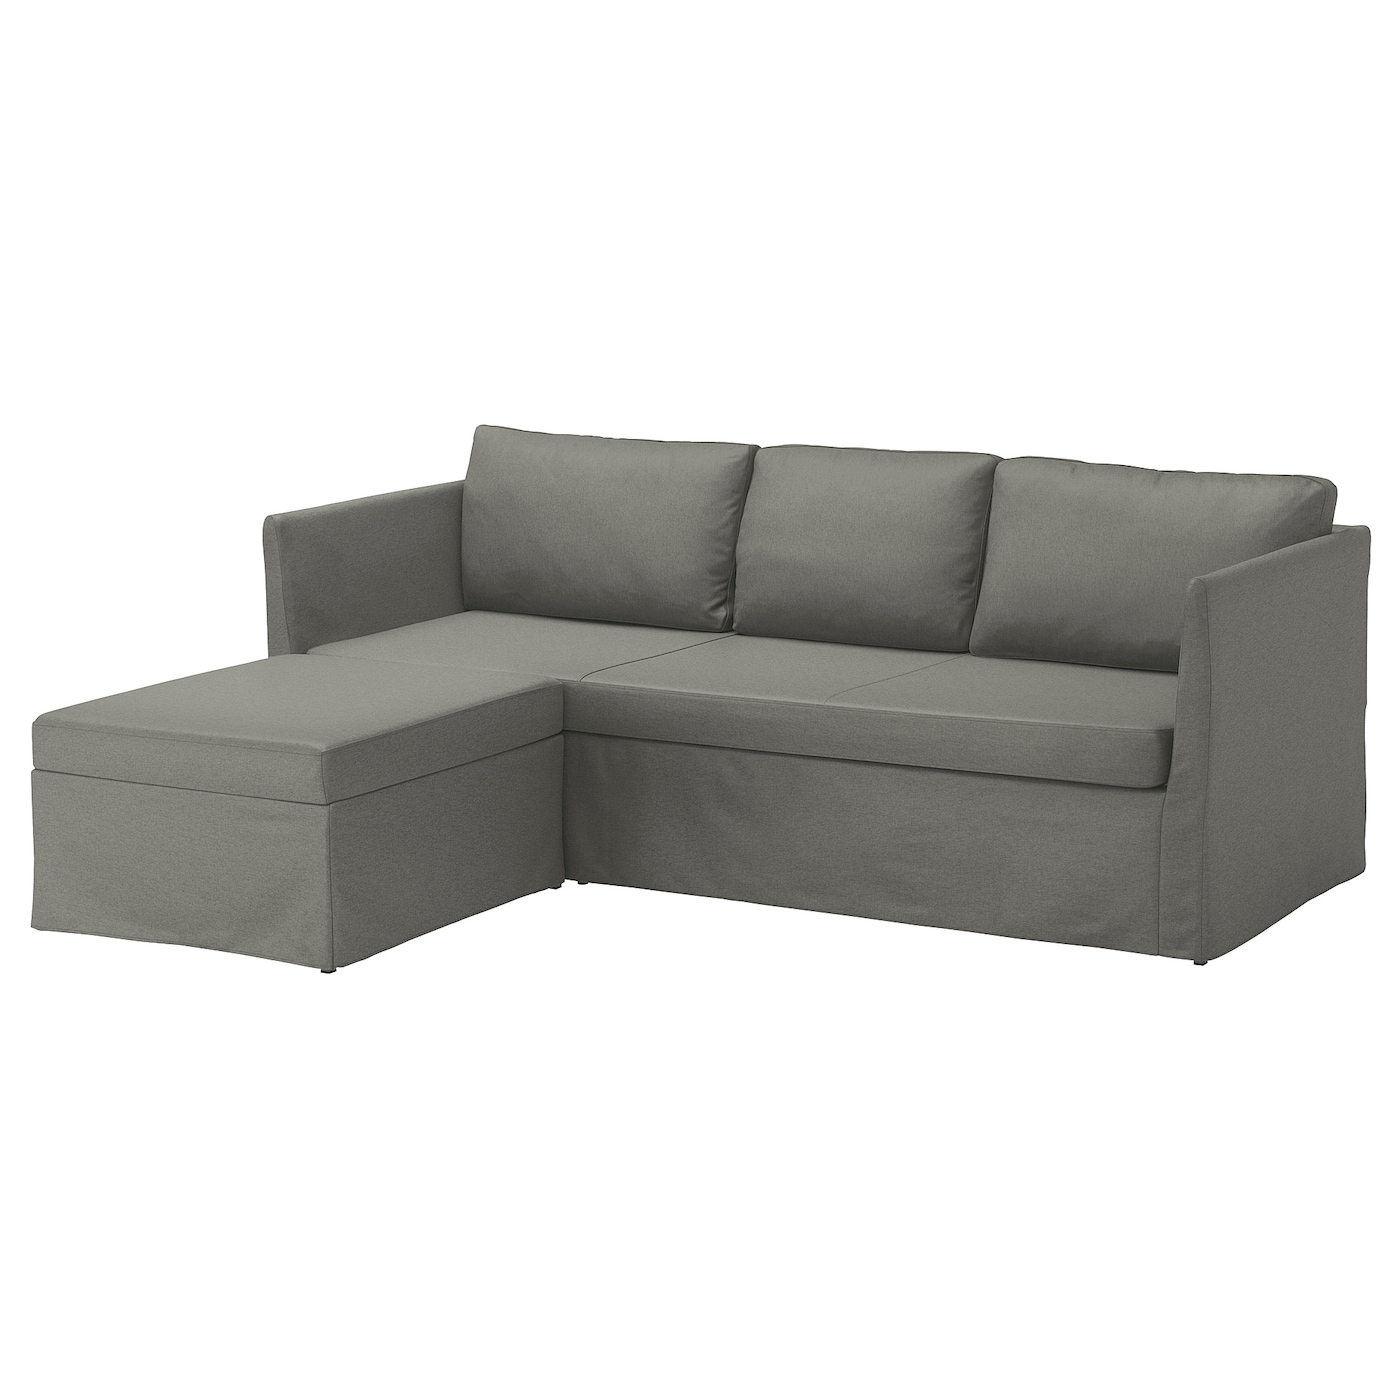 IKEA BRÅTHULT corner sofa-bed You sit comfortably thanks to the resilient foam and springy seat.